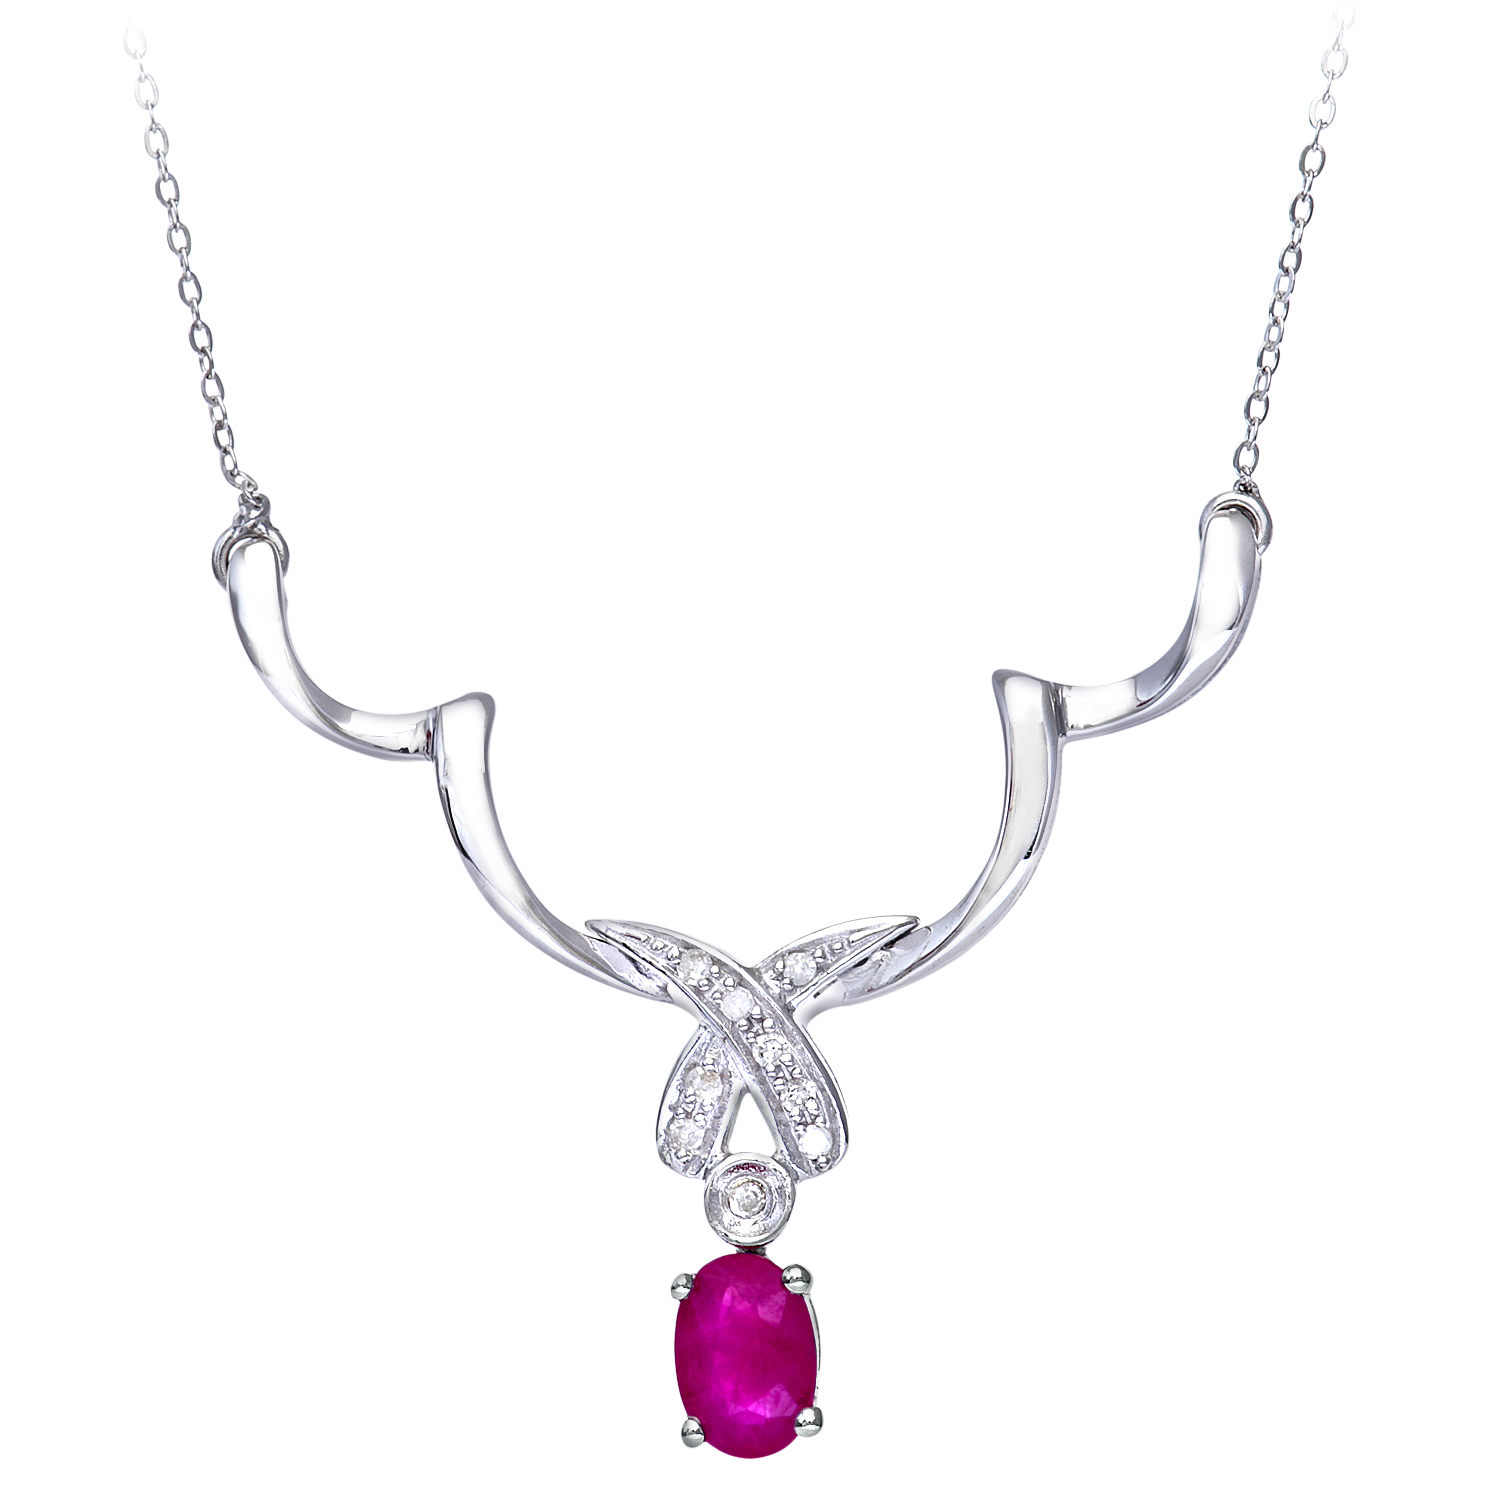 9ct White Gold Diamond and Ruby Ladies Necklace by Revoni